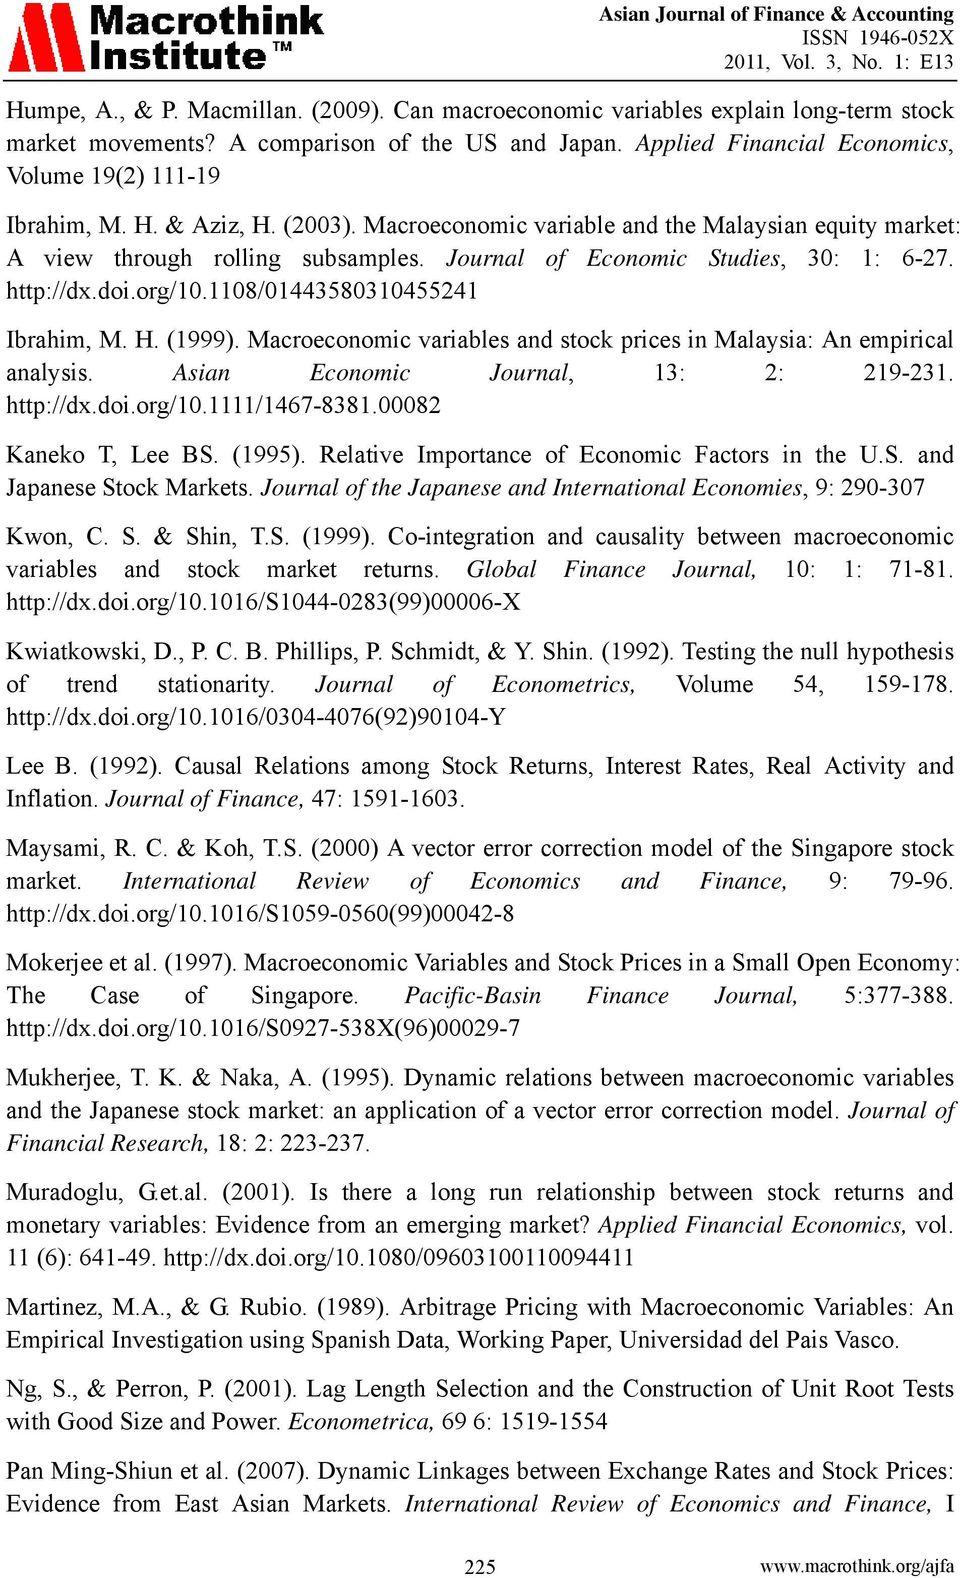 Journal of Economic Sudies, 30: 1: 6-7. hp://dx.doi.org/10.1108/0144358031045541 Ibrahim, M. H. (1999). Macroeconomic variables and sock prices in Malaysia: An empirical analysis.